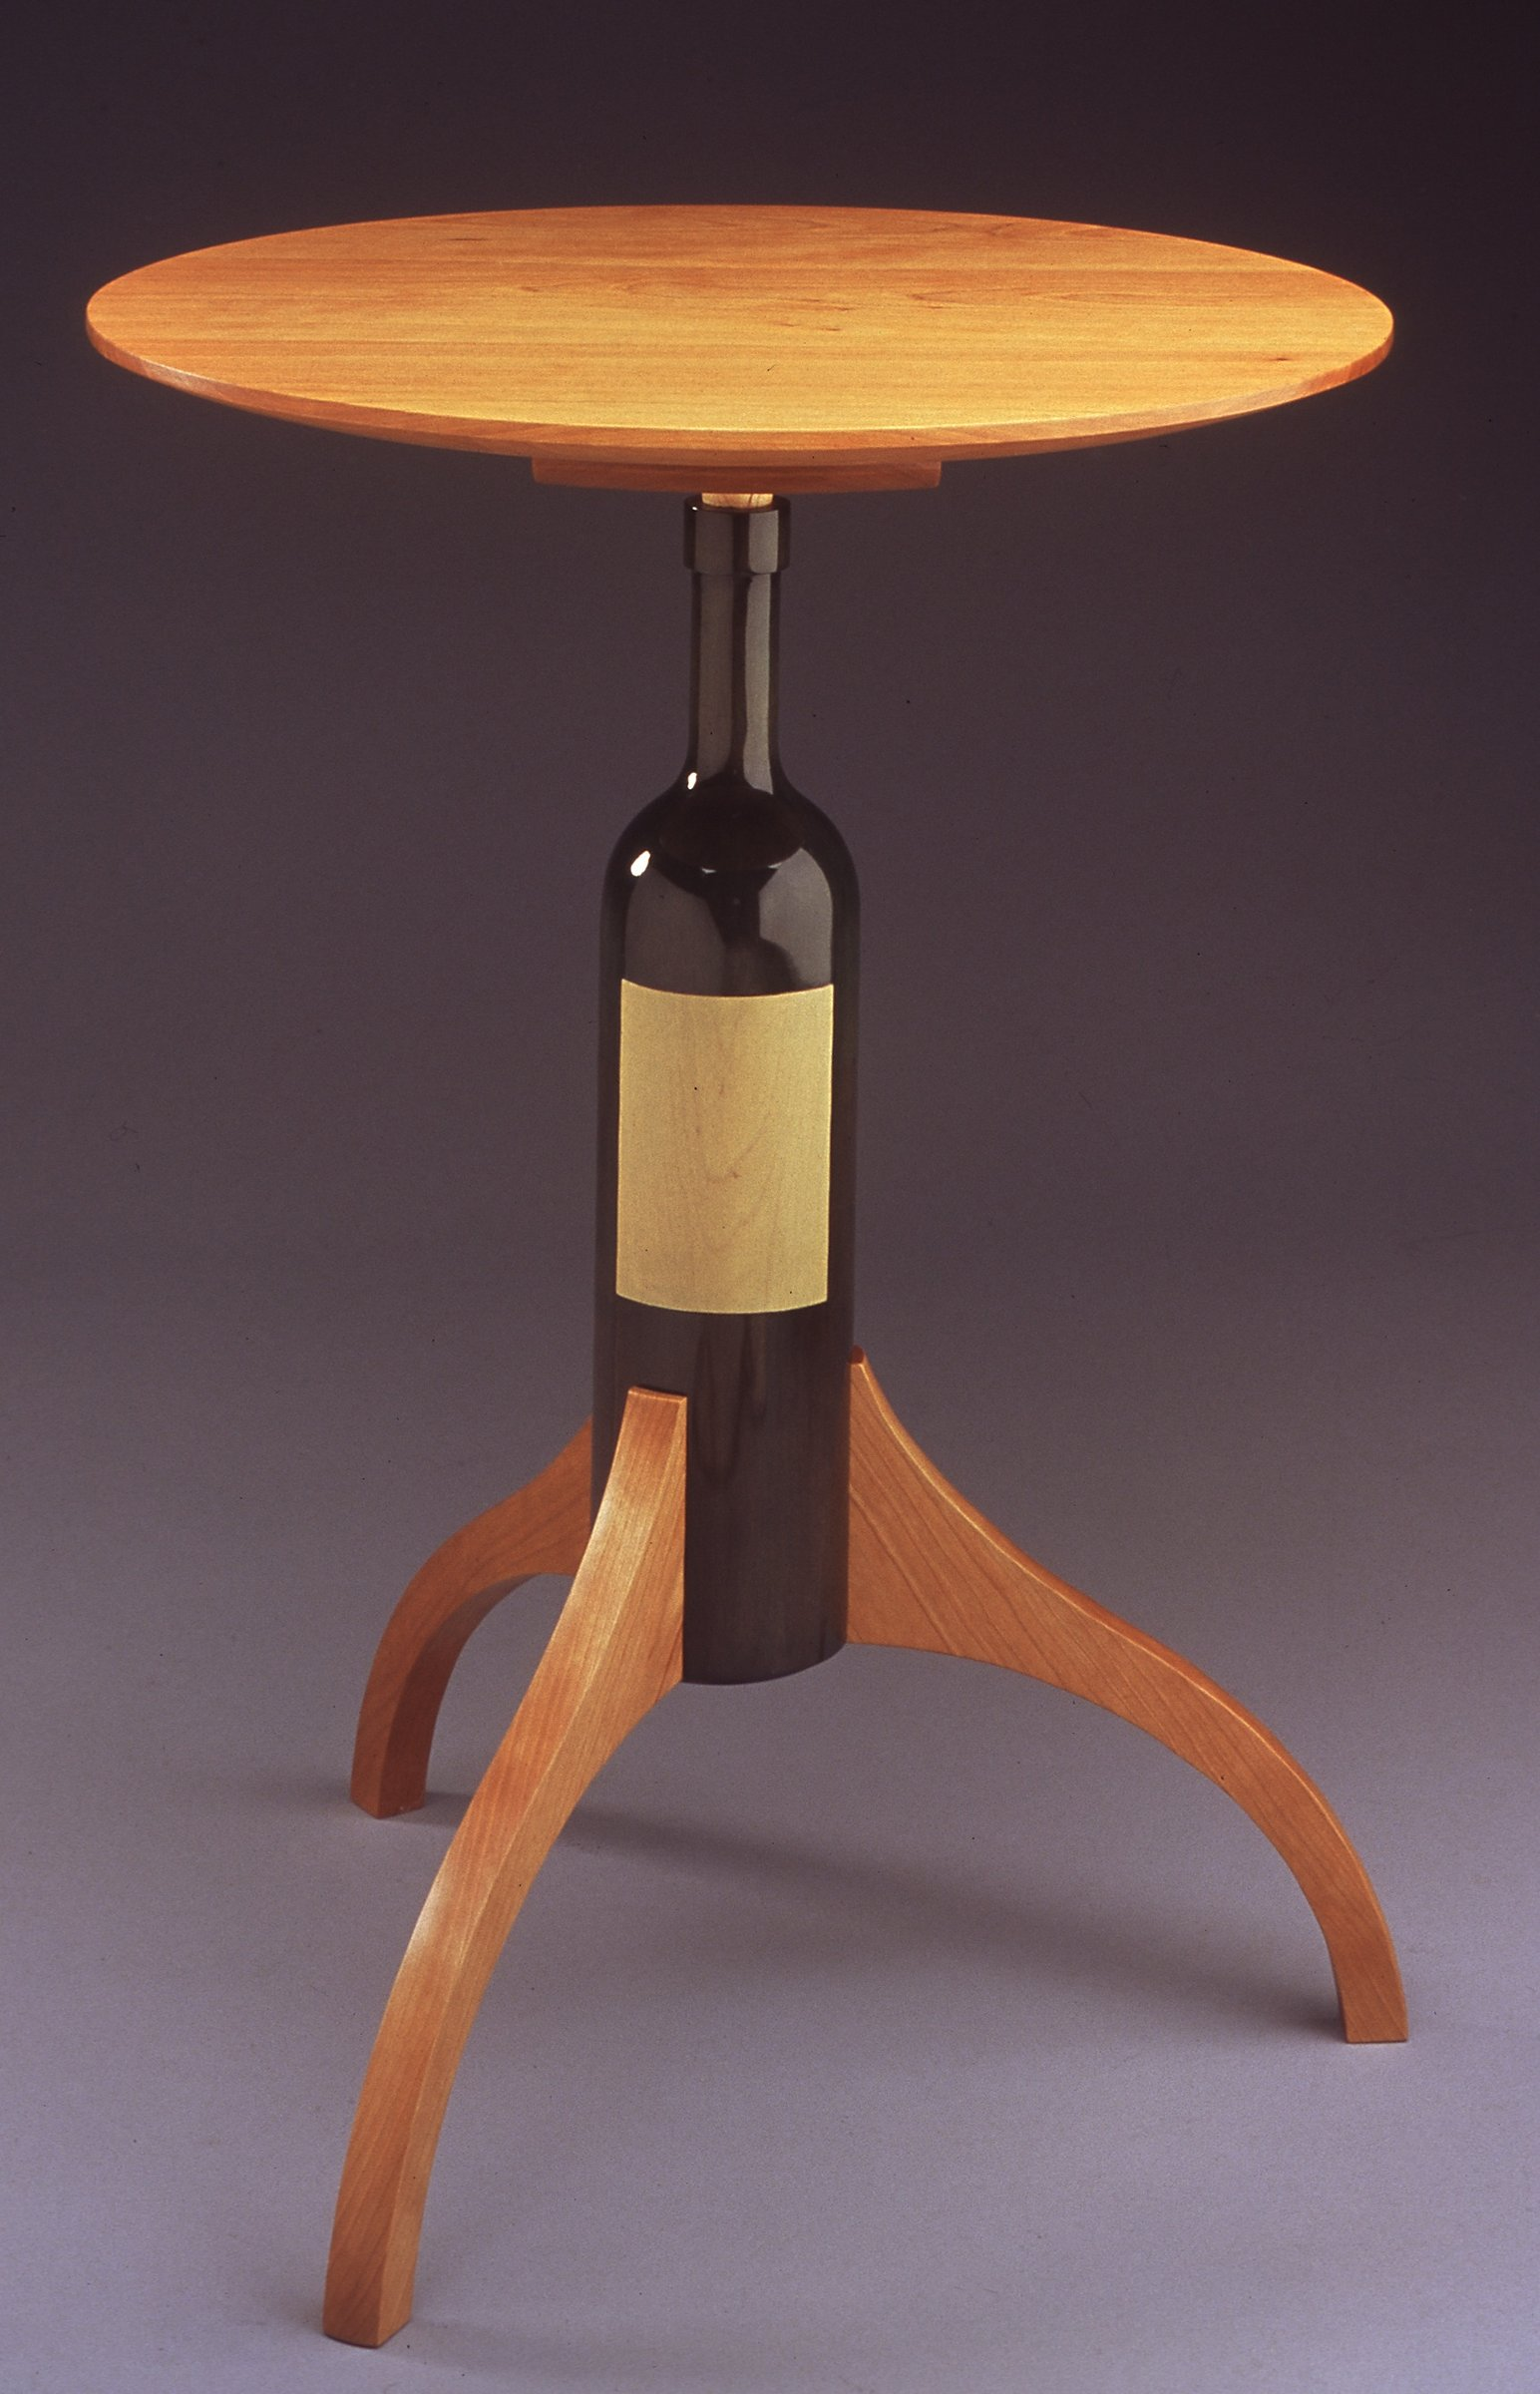 wine bottle table by duncan gowdy wood side table